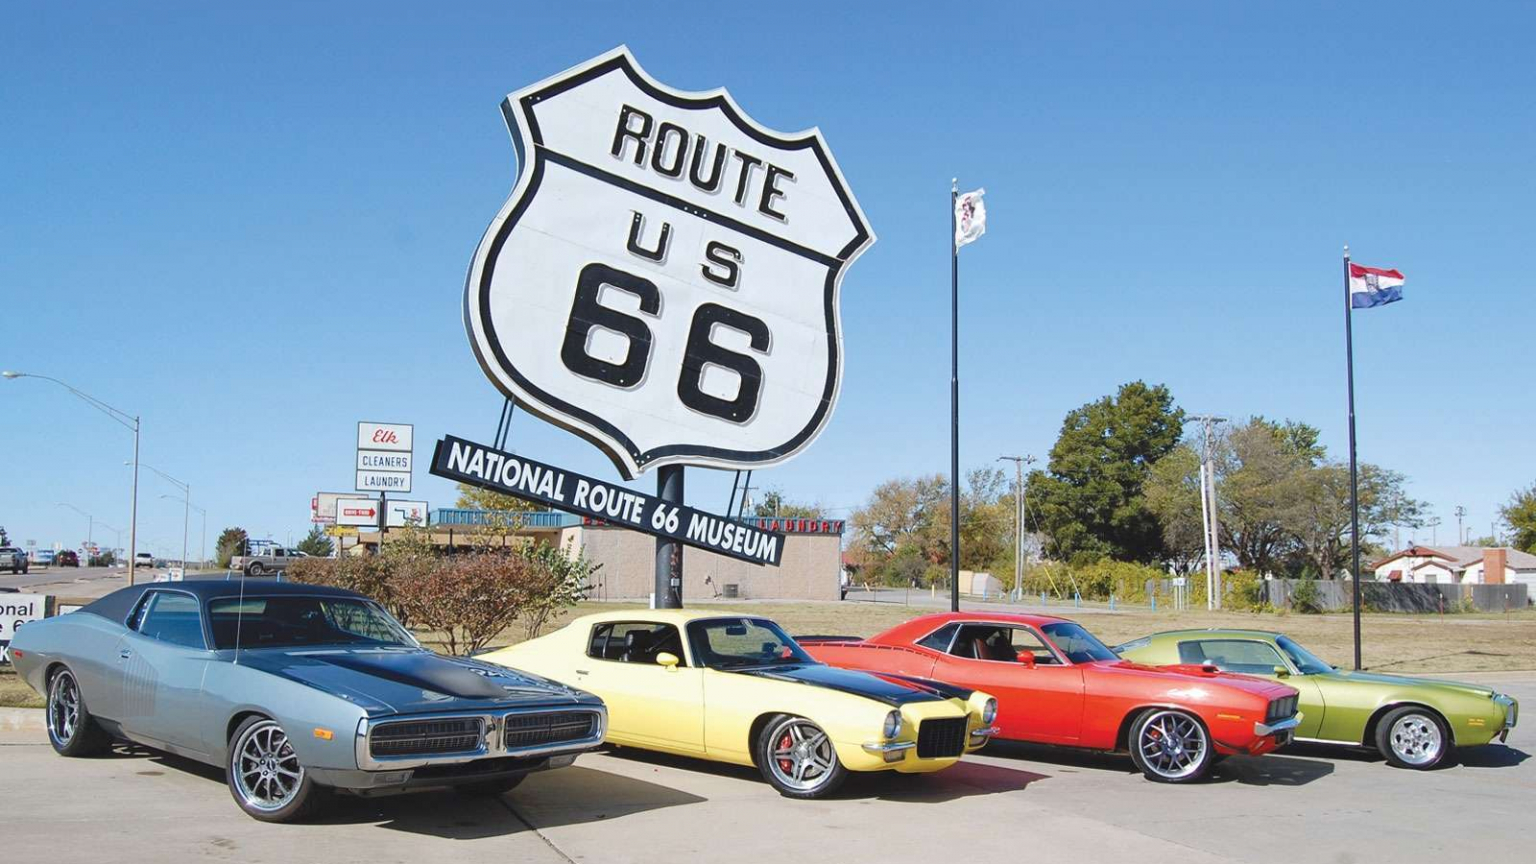 Free Download Muscle On Route 66 Wallpaper Hd Car Wallpapers